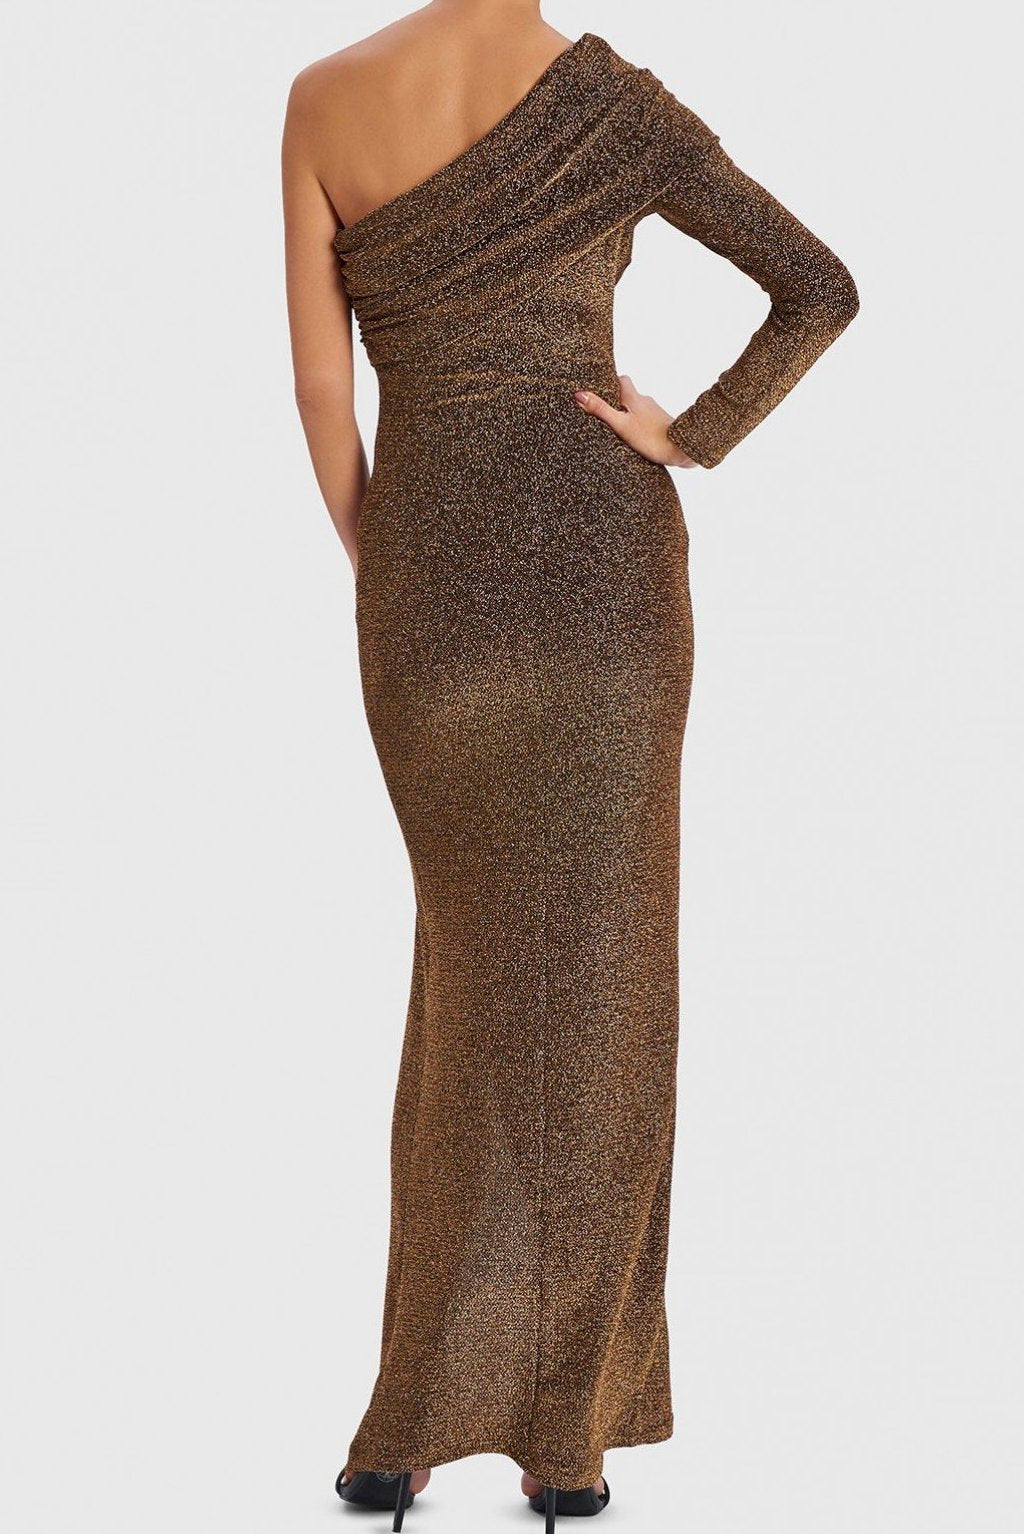 FOREVER UNIQUE HARLOW GOLD GLITTER ONE SHOULDER MAXI DRESS